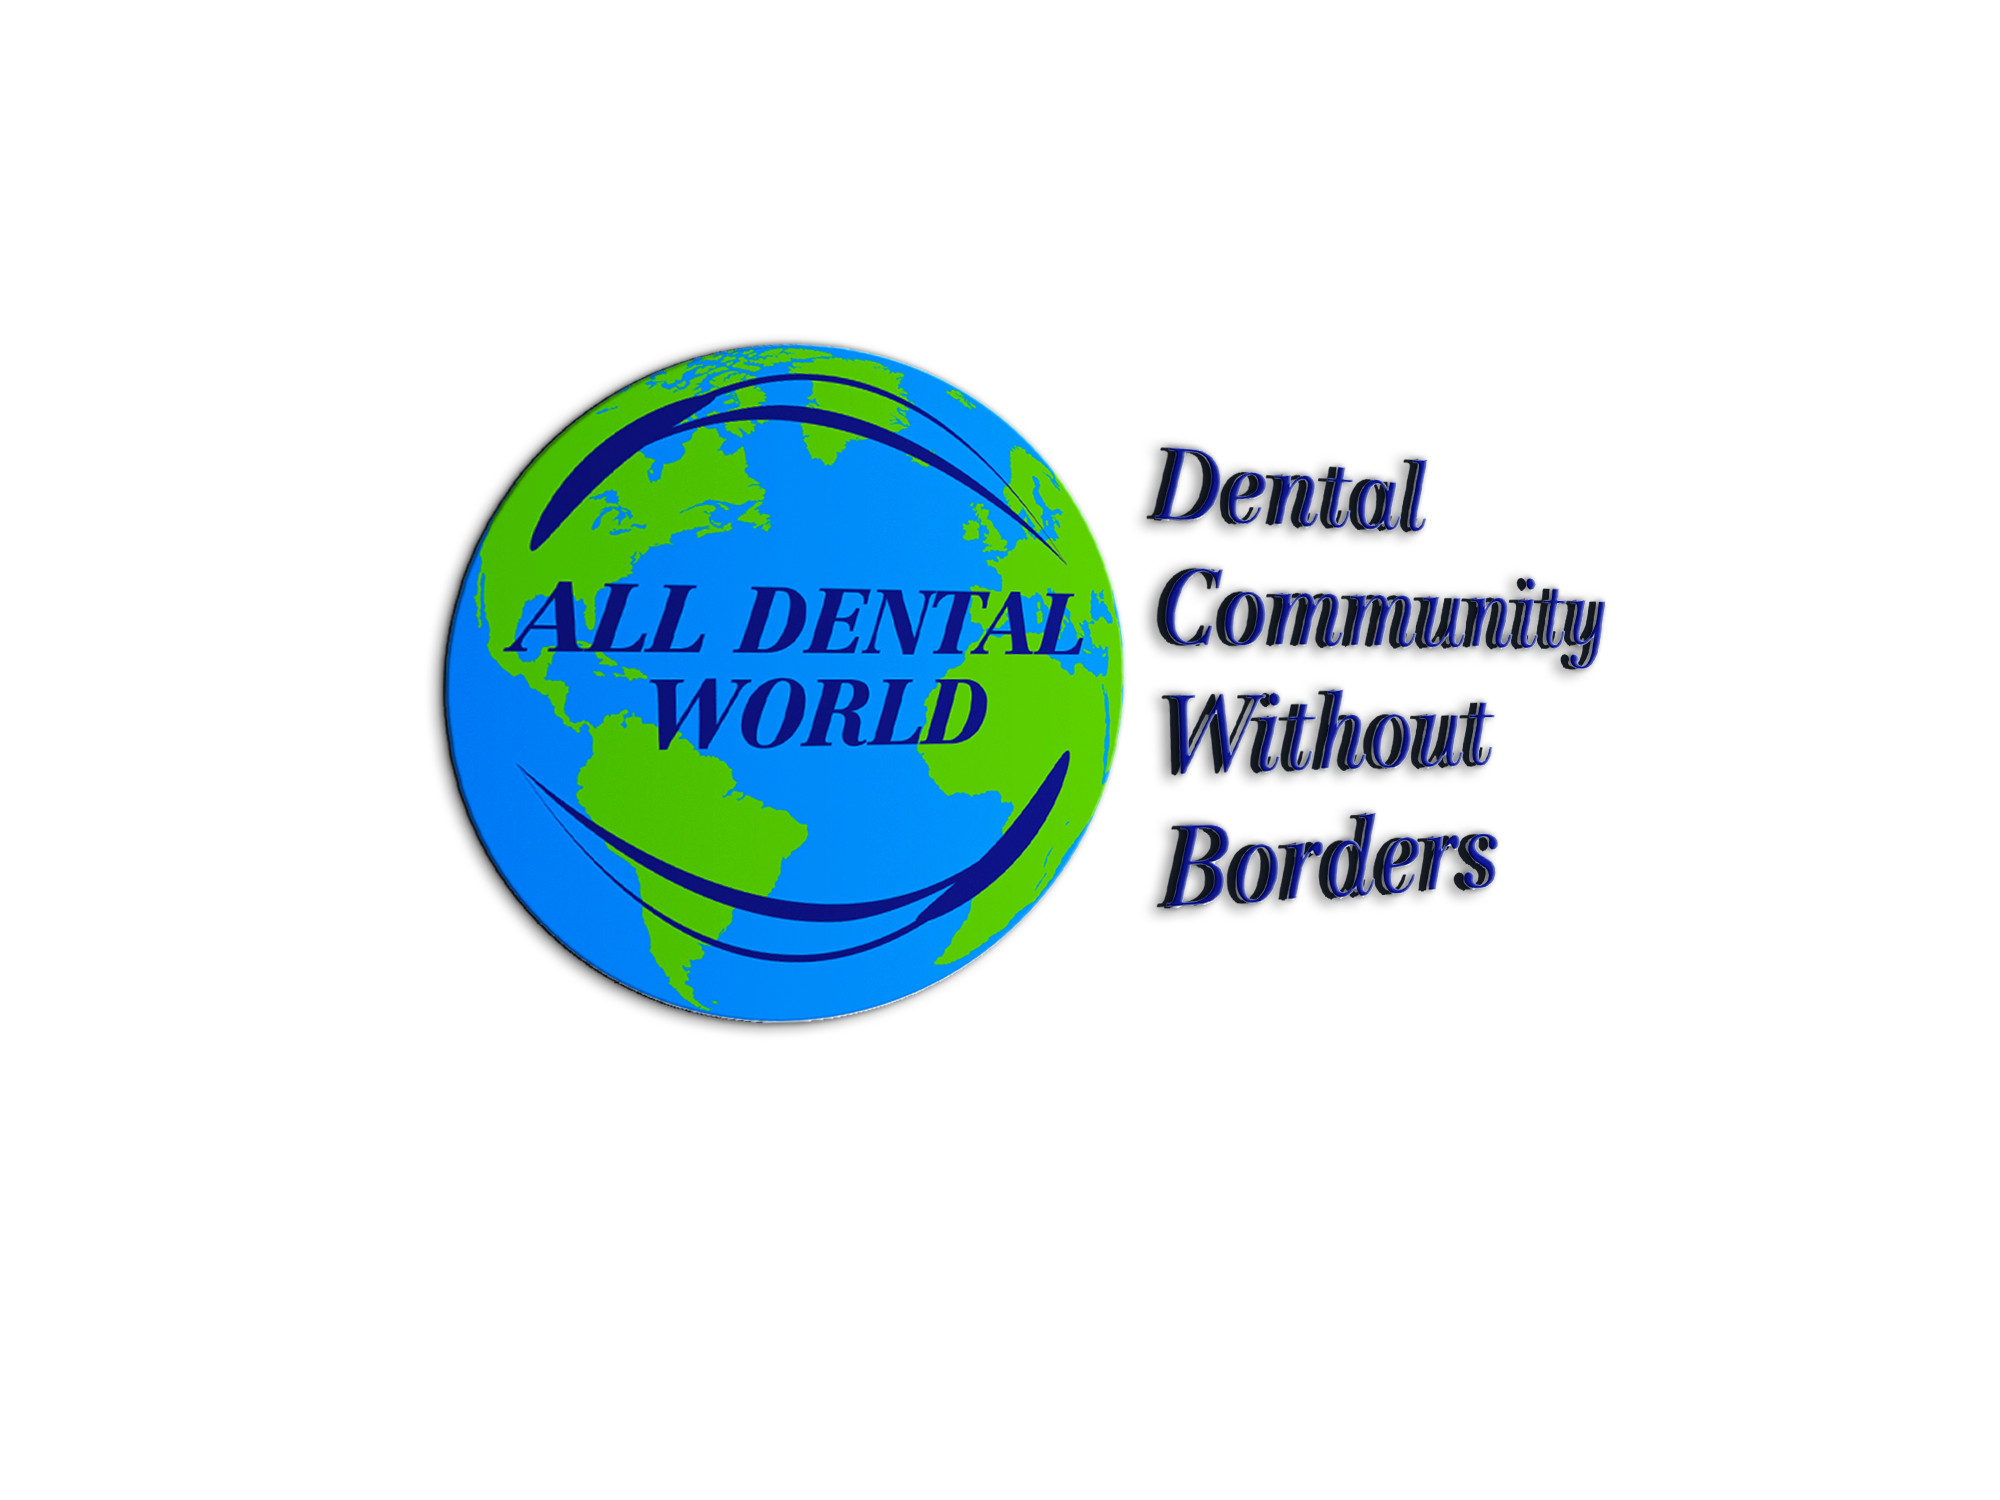 Alldentalworld